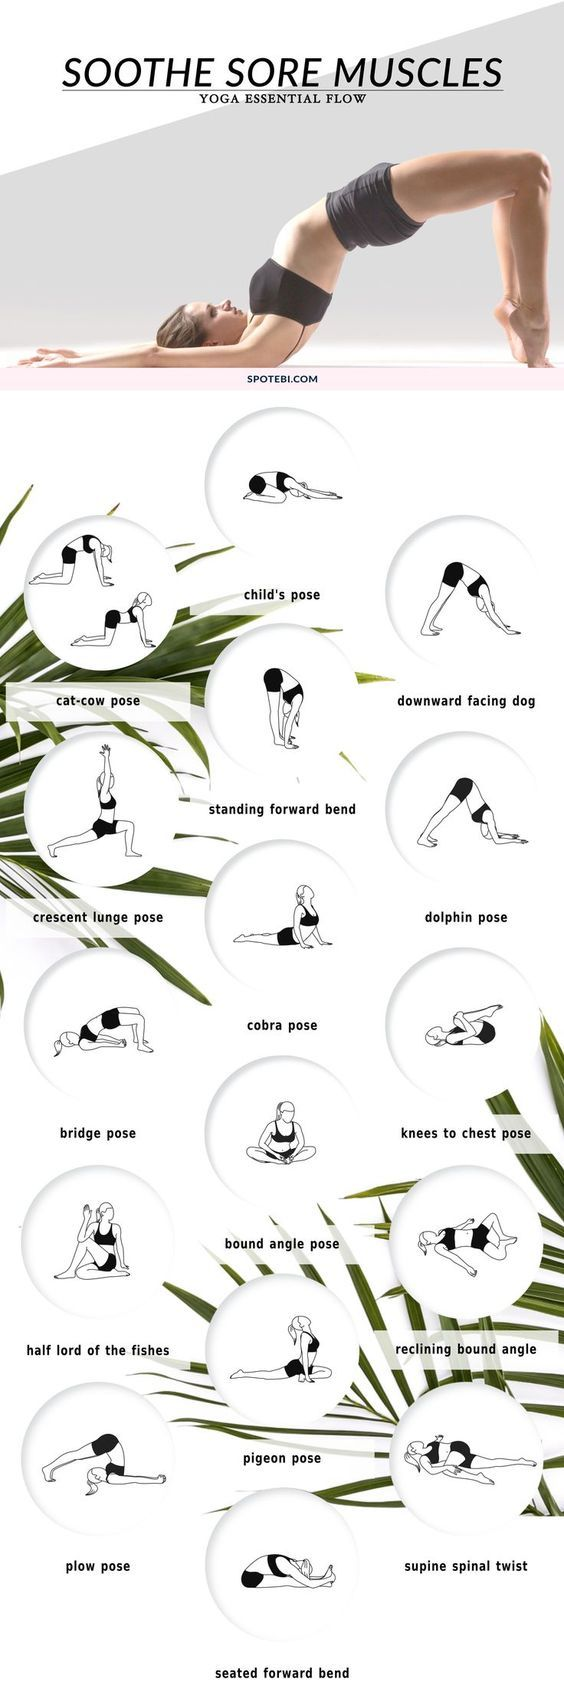 Having sore muscles after an intense workout is very common, especially for beginners who are just starting out. This gentle and invigorating yoga sequence will help you ease post-workout muscle soreness and increase your mobility and flexibility for future workouts. http://www.spotebi.com/yoga-sequences/soothe-sore-muscles-flow/